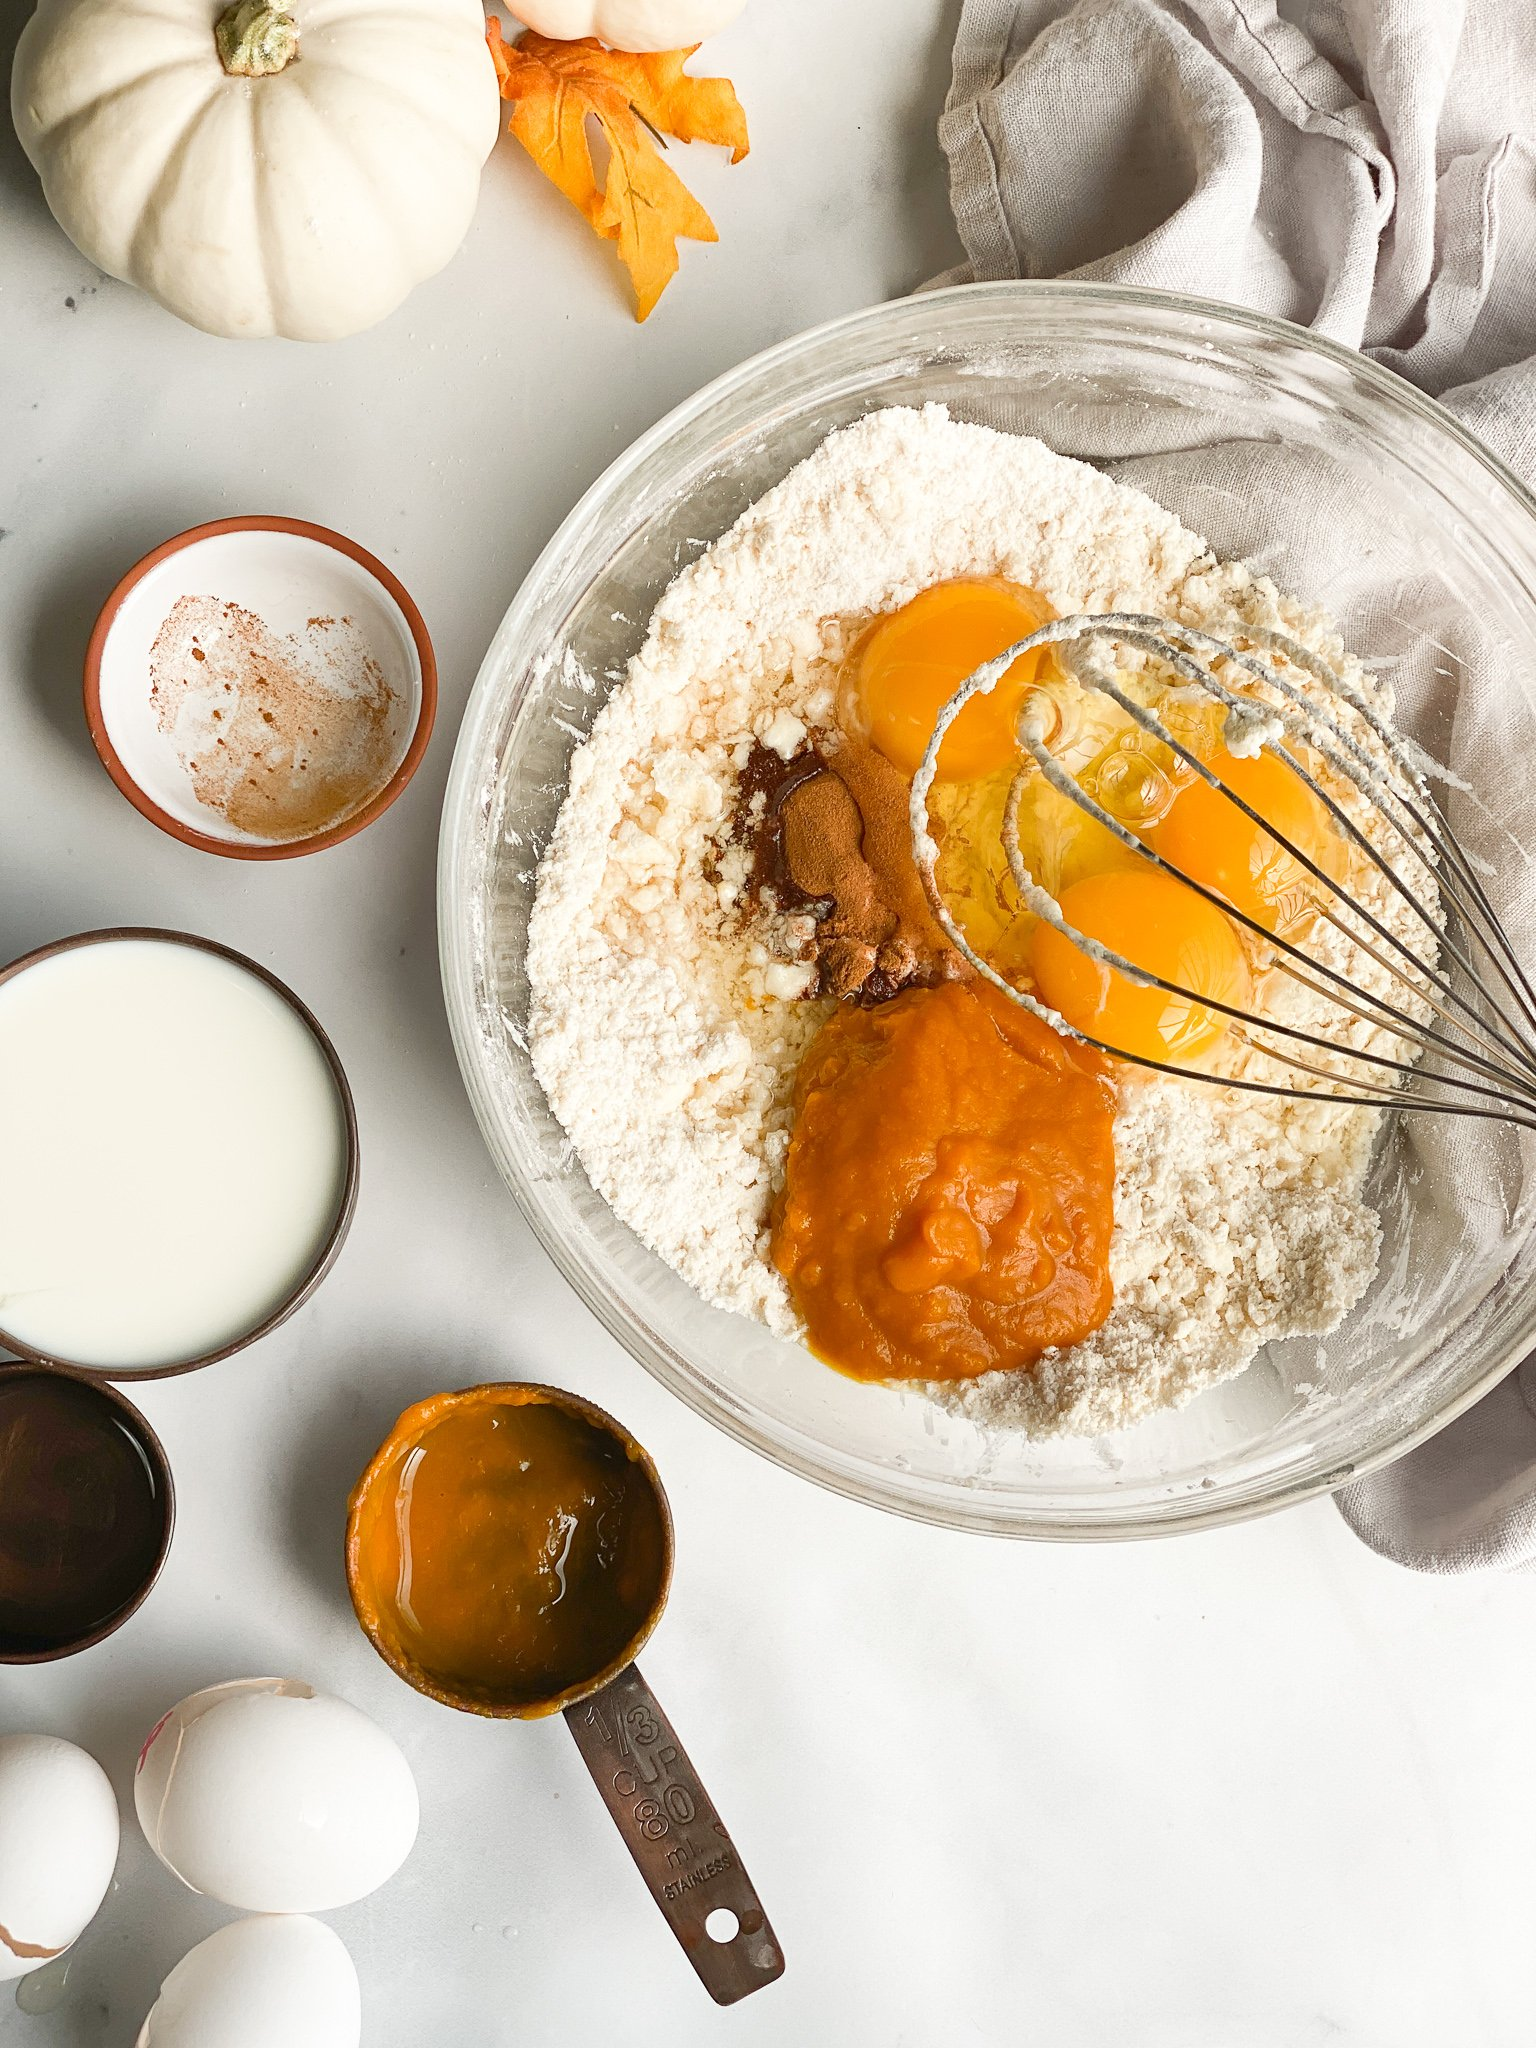 Step 2 of pumpkin waffles is to whisk in the eggs, pumpkin puree, spices, and avocado oil into the flour and butter and flour mixture.